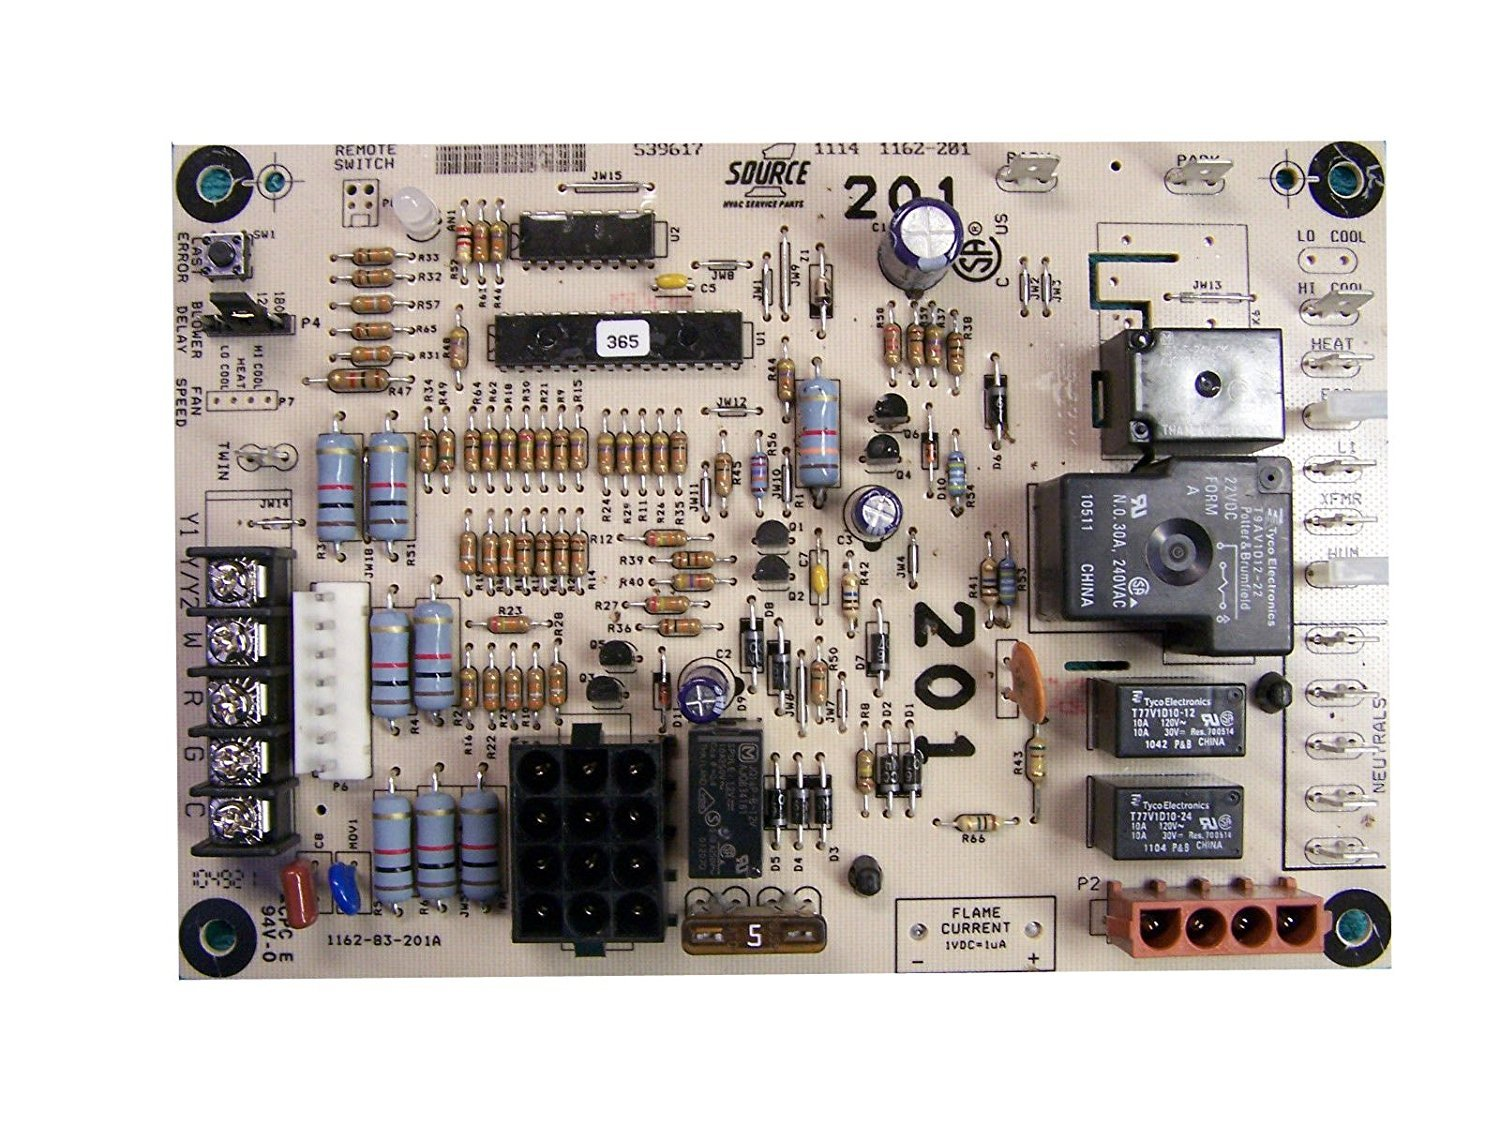 031 01267 001a Oem Upgraded York Furnace Control Circuit Board By Bdp Amazon Com Industrial Scientific